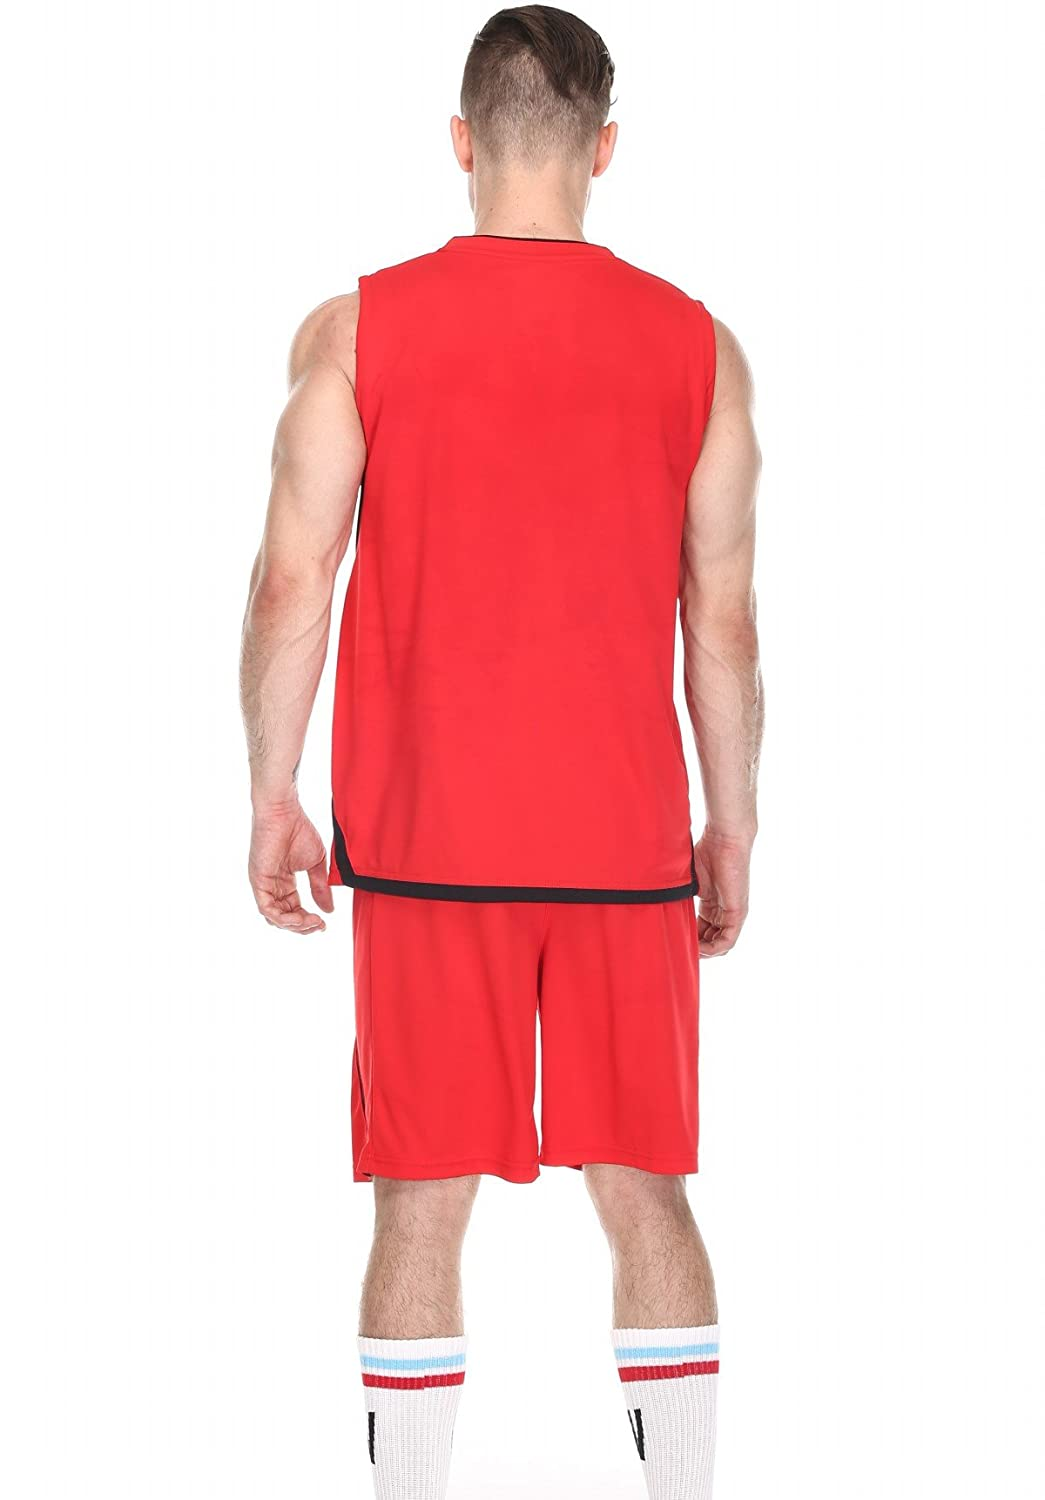 0ea418829 Men s Basketball Shorts and Jersey Basketball Uniform for Men Workout  Running Gym Shorts Set Quick Dry Breathable Sportwear  Amazon.co.uk   Clothing